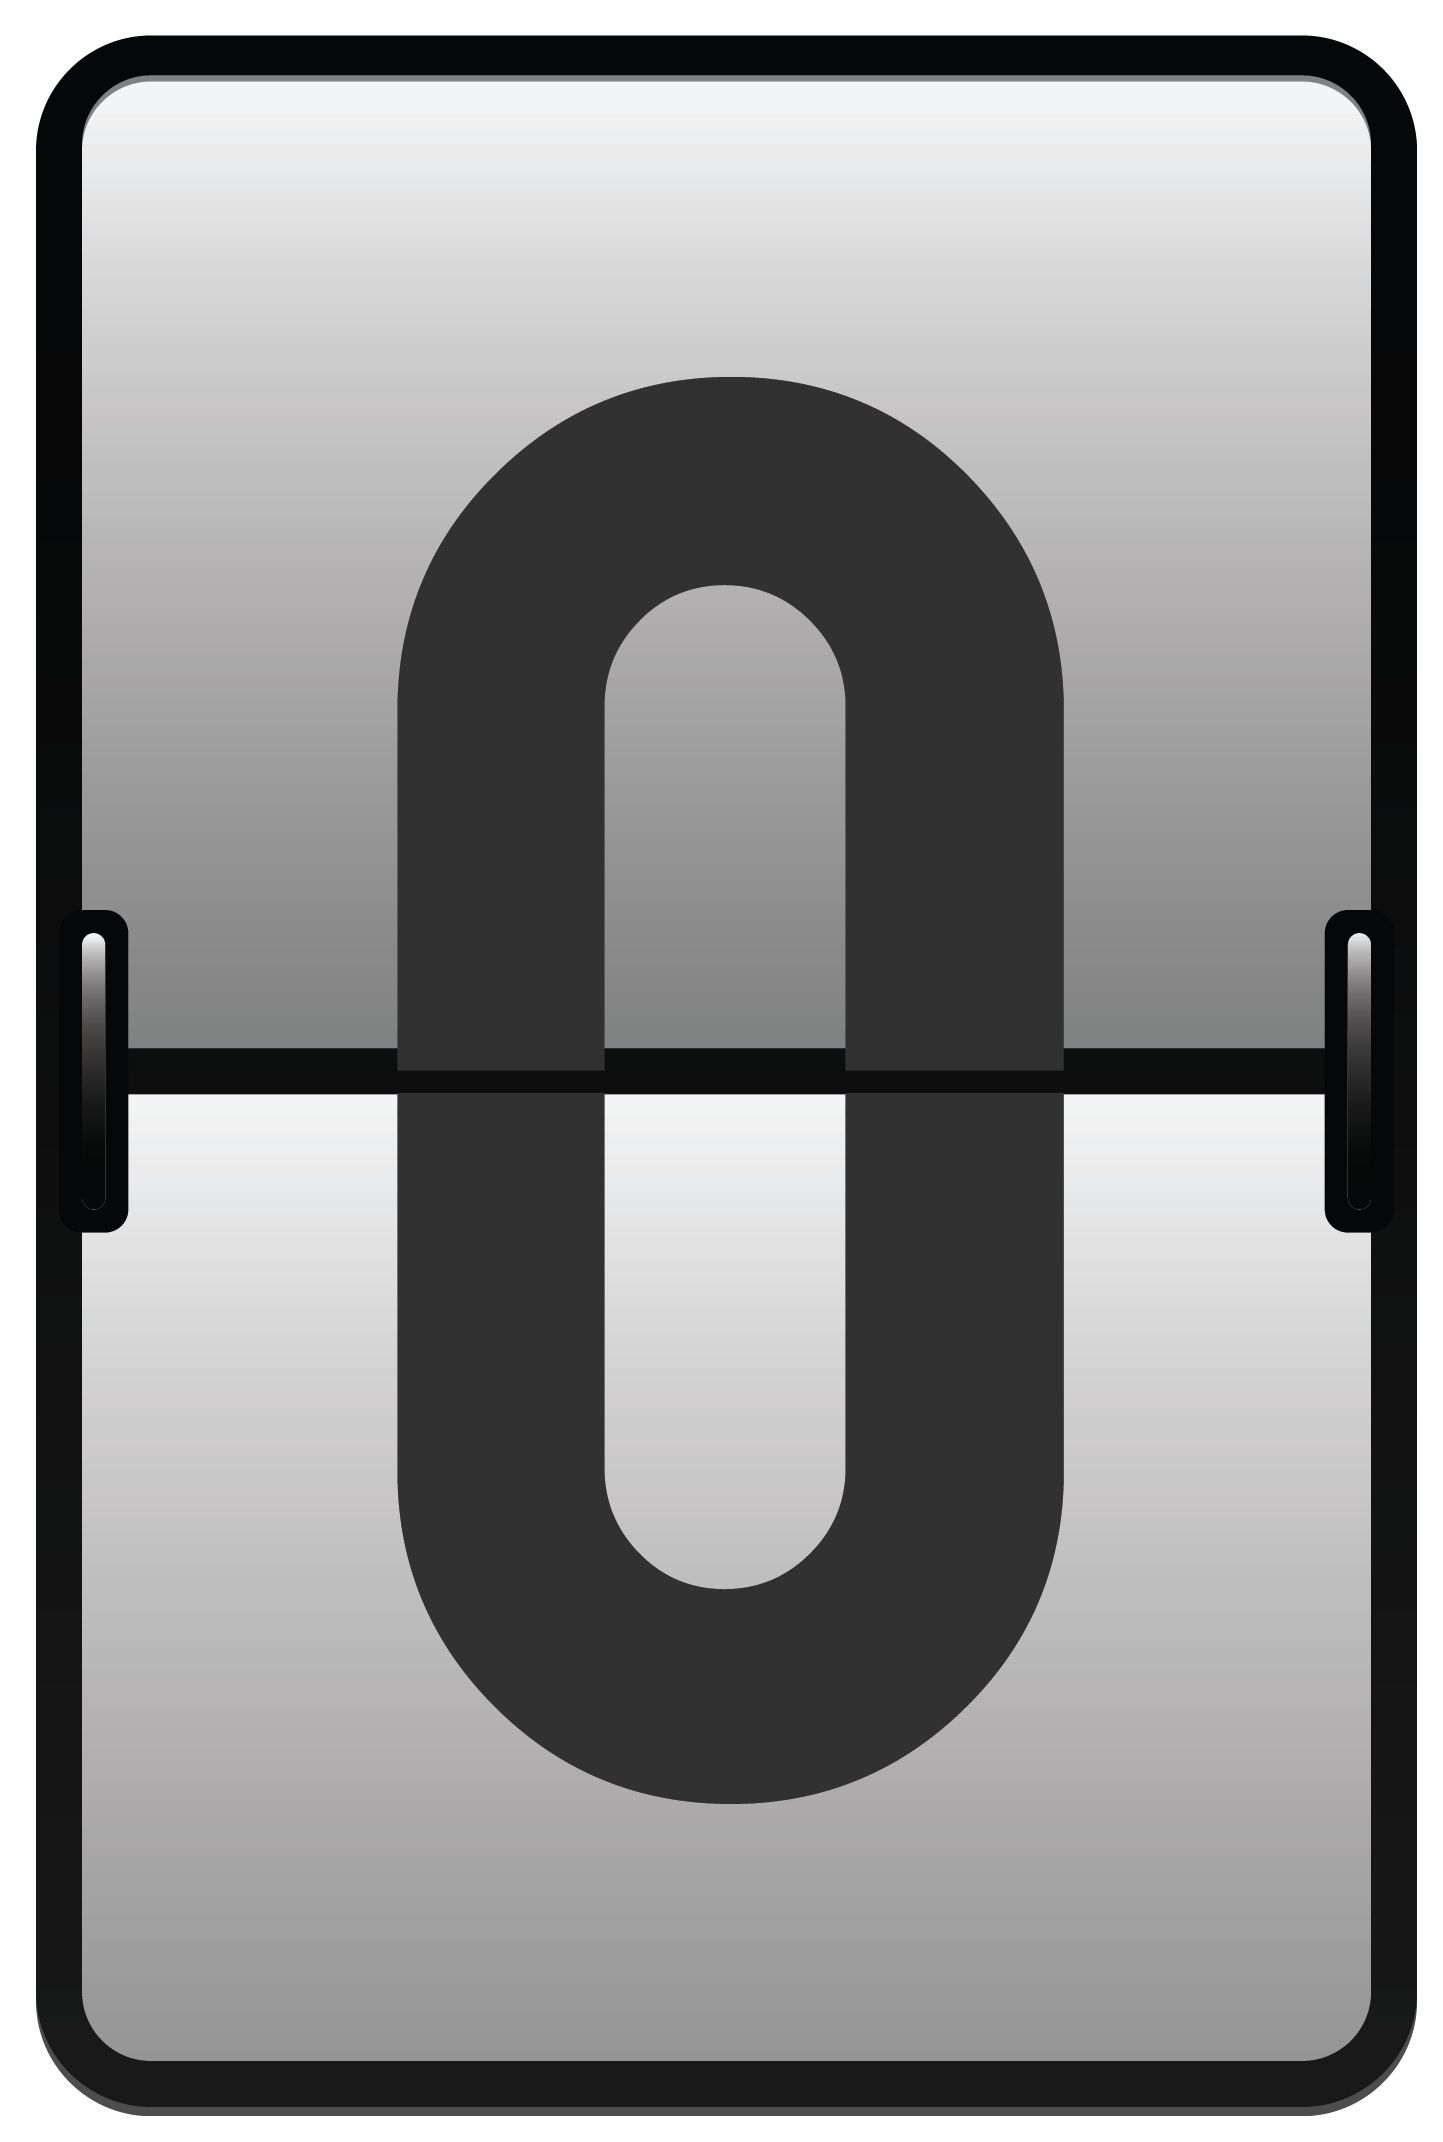 Counter Number Zero PNG Clipart Image.